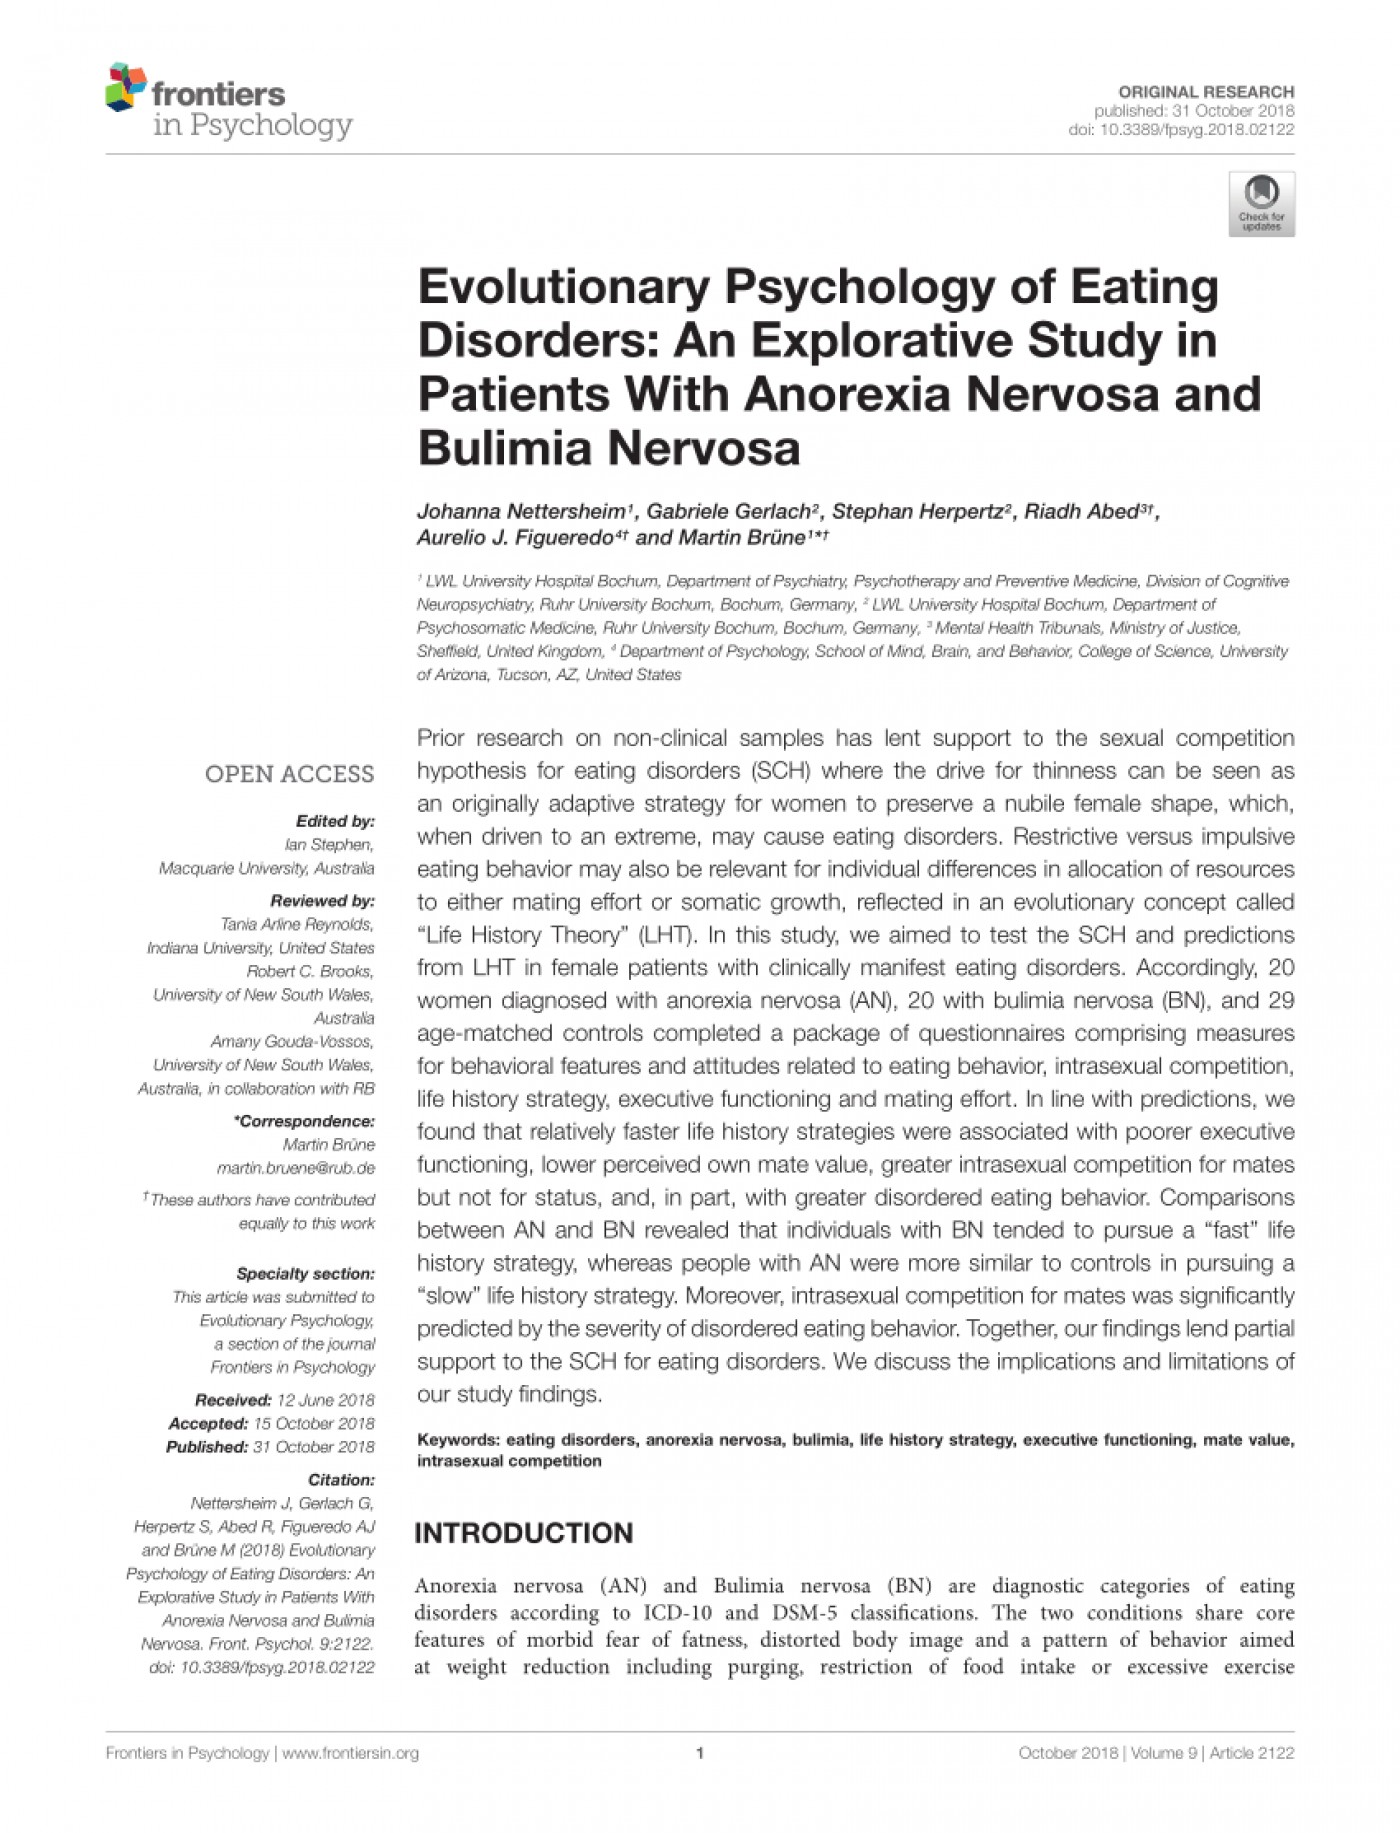 003 Largepreview Research Paper Psychological On Eating Imposing Disorders Psychology Topics 1400